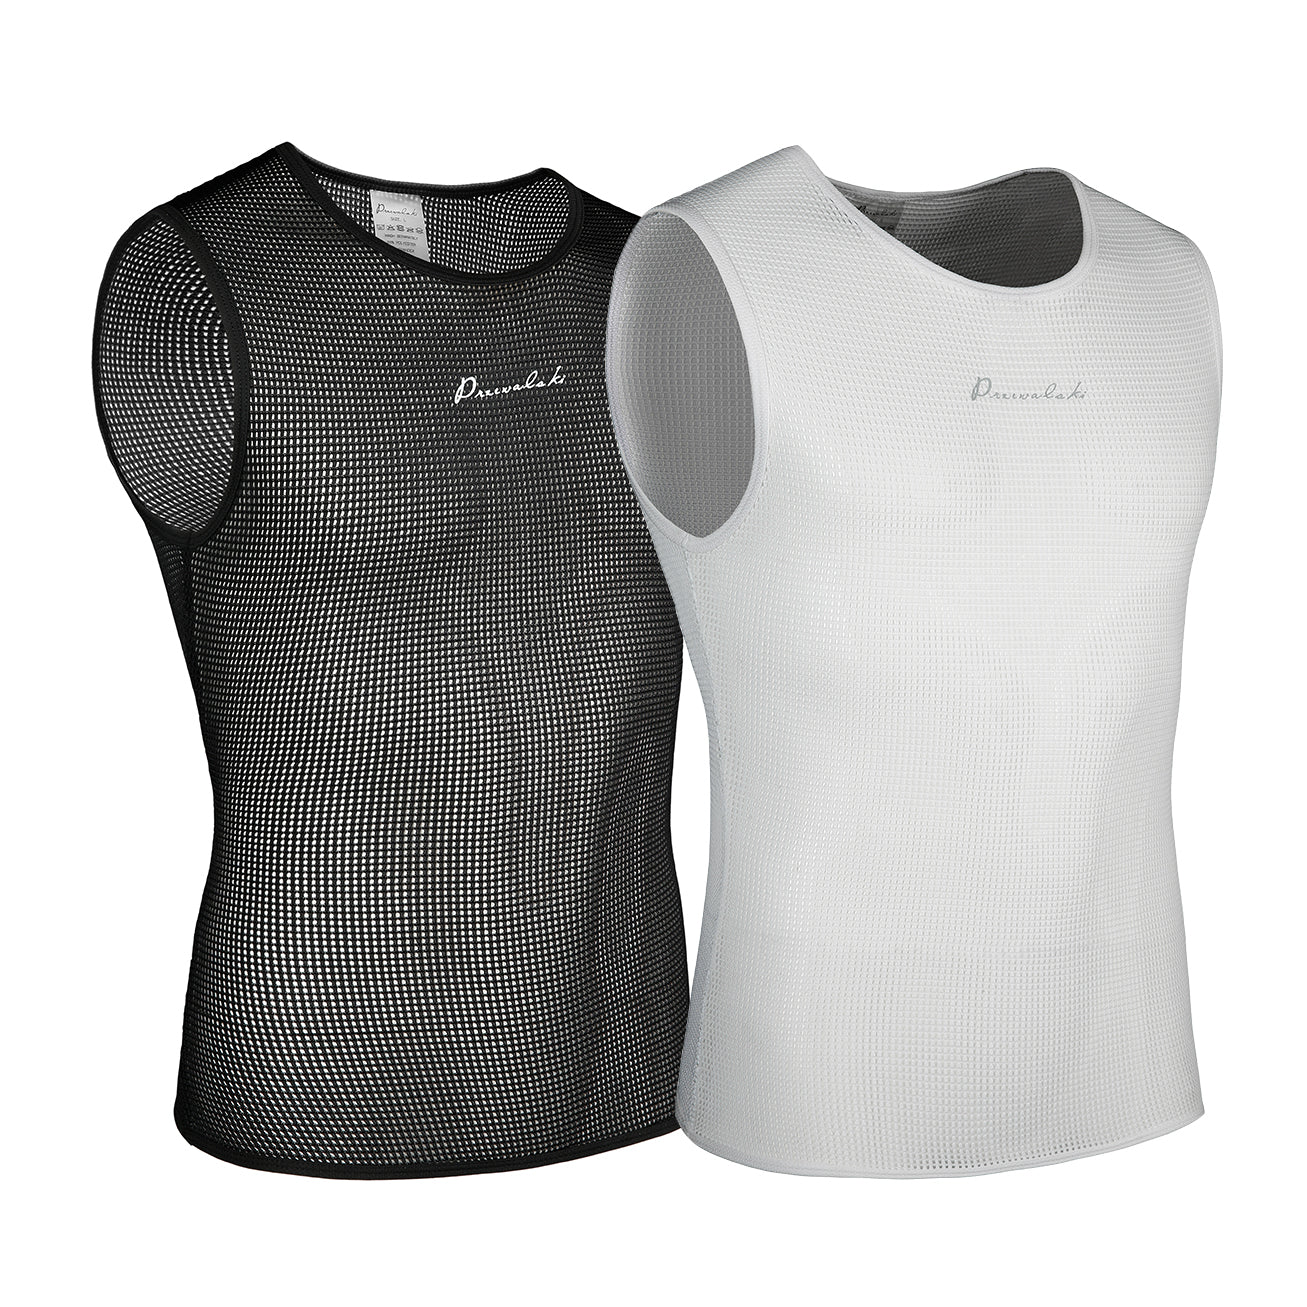 Przewalski Men's Sleeveless Cycling Base Layer Undershirt